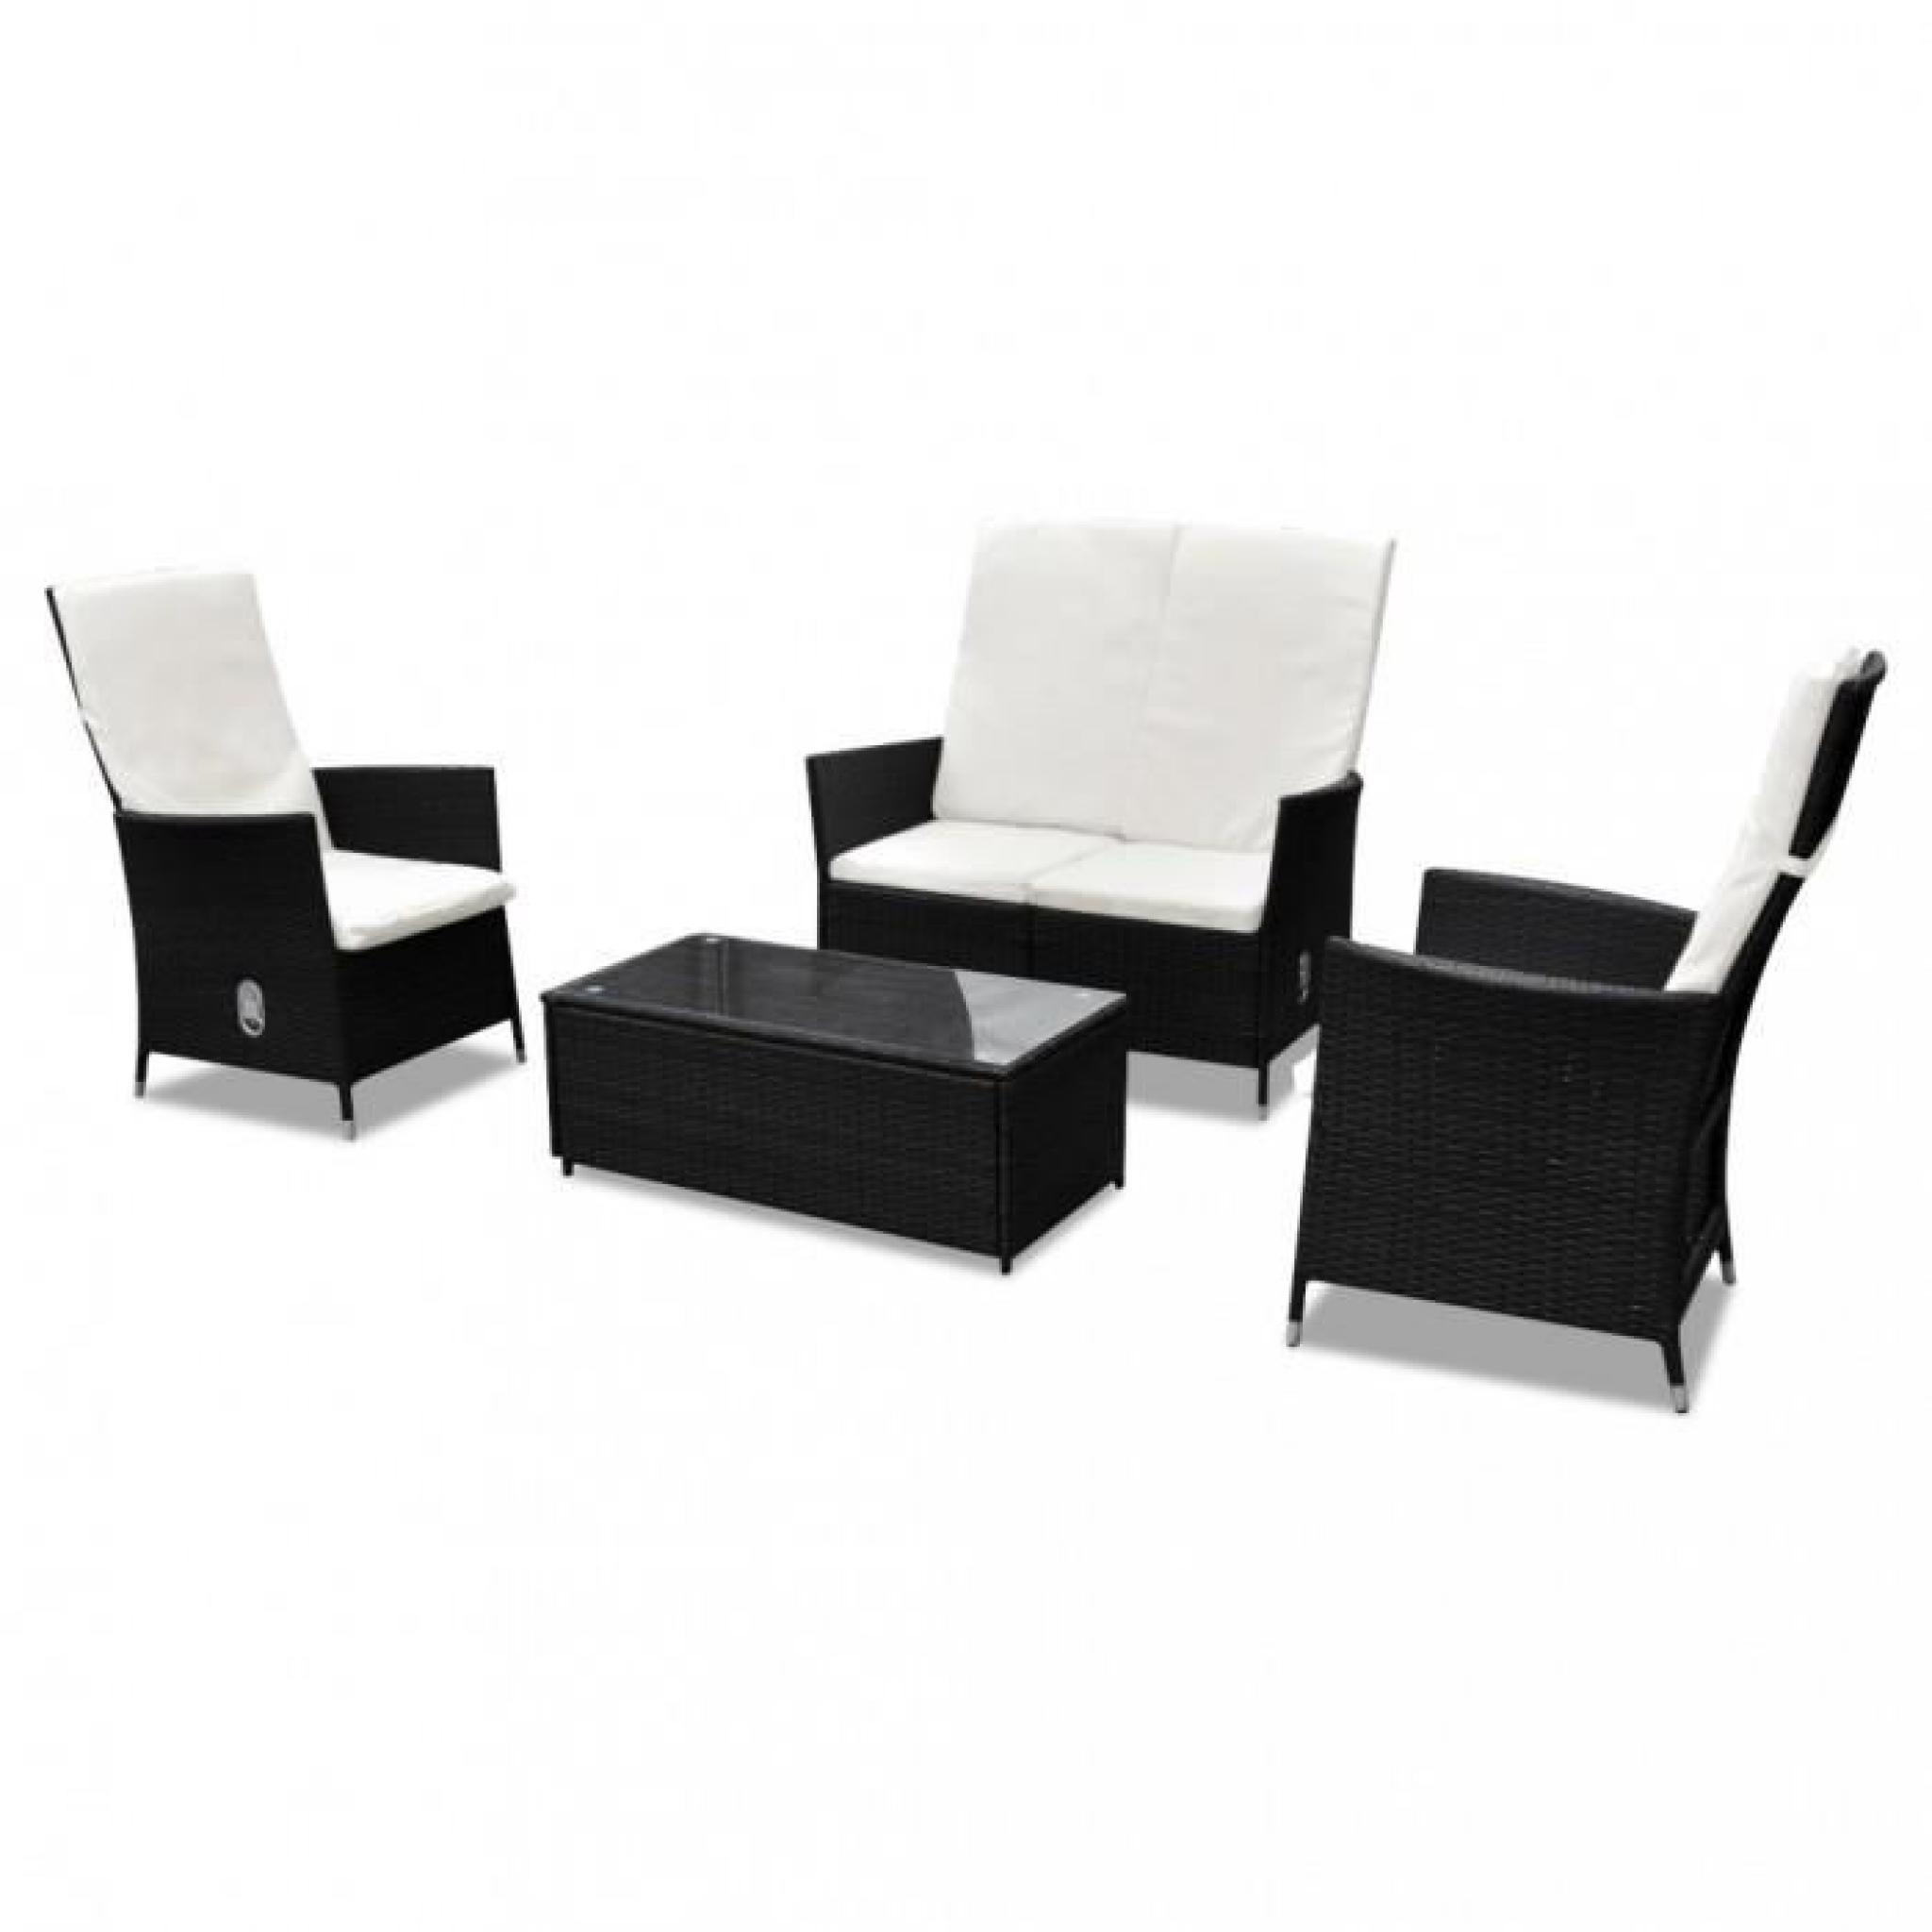 ensembles de meubles d 39 exterieur ensemble salon de jardin. Black Bedroom Furniture Sets. Home Design Ideas